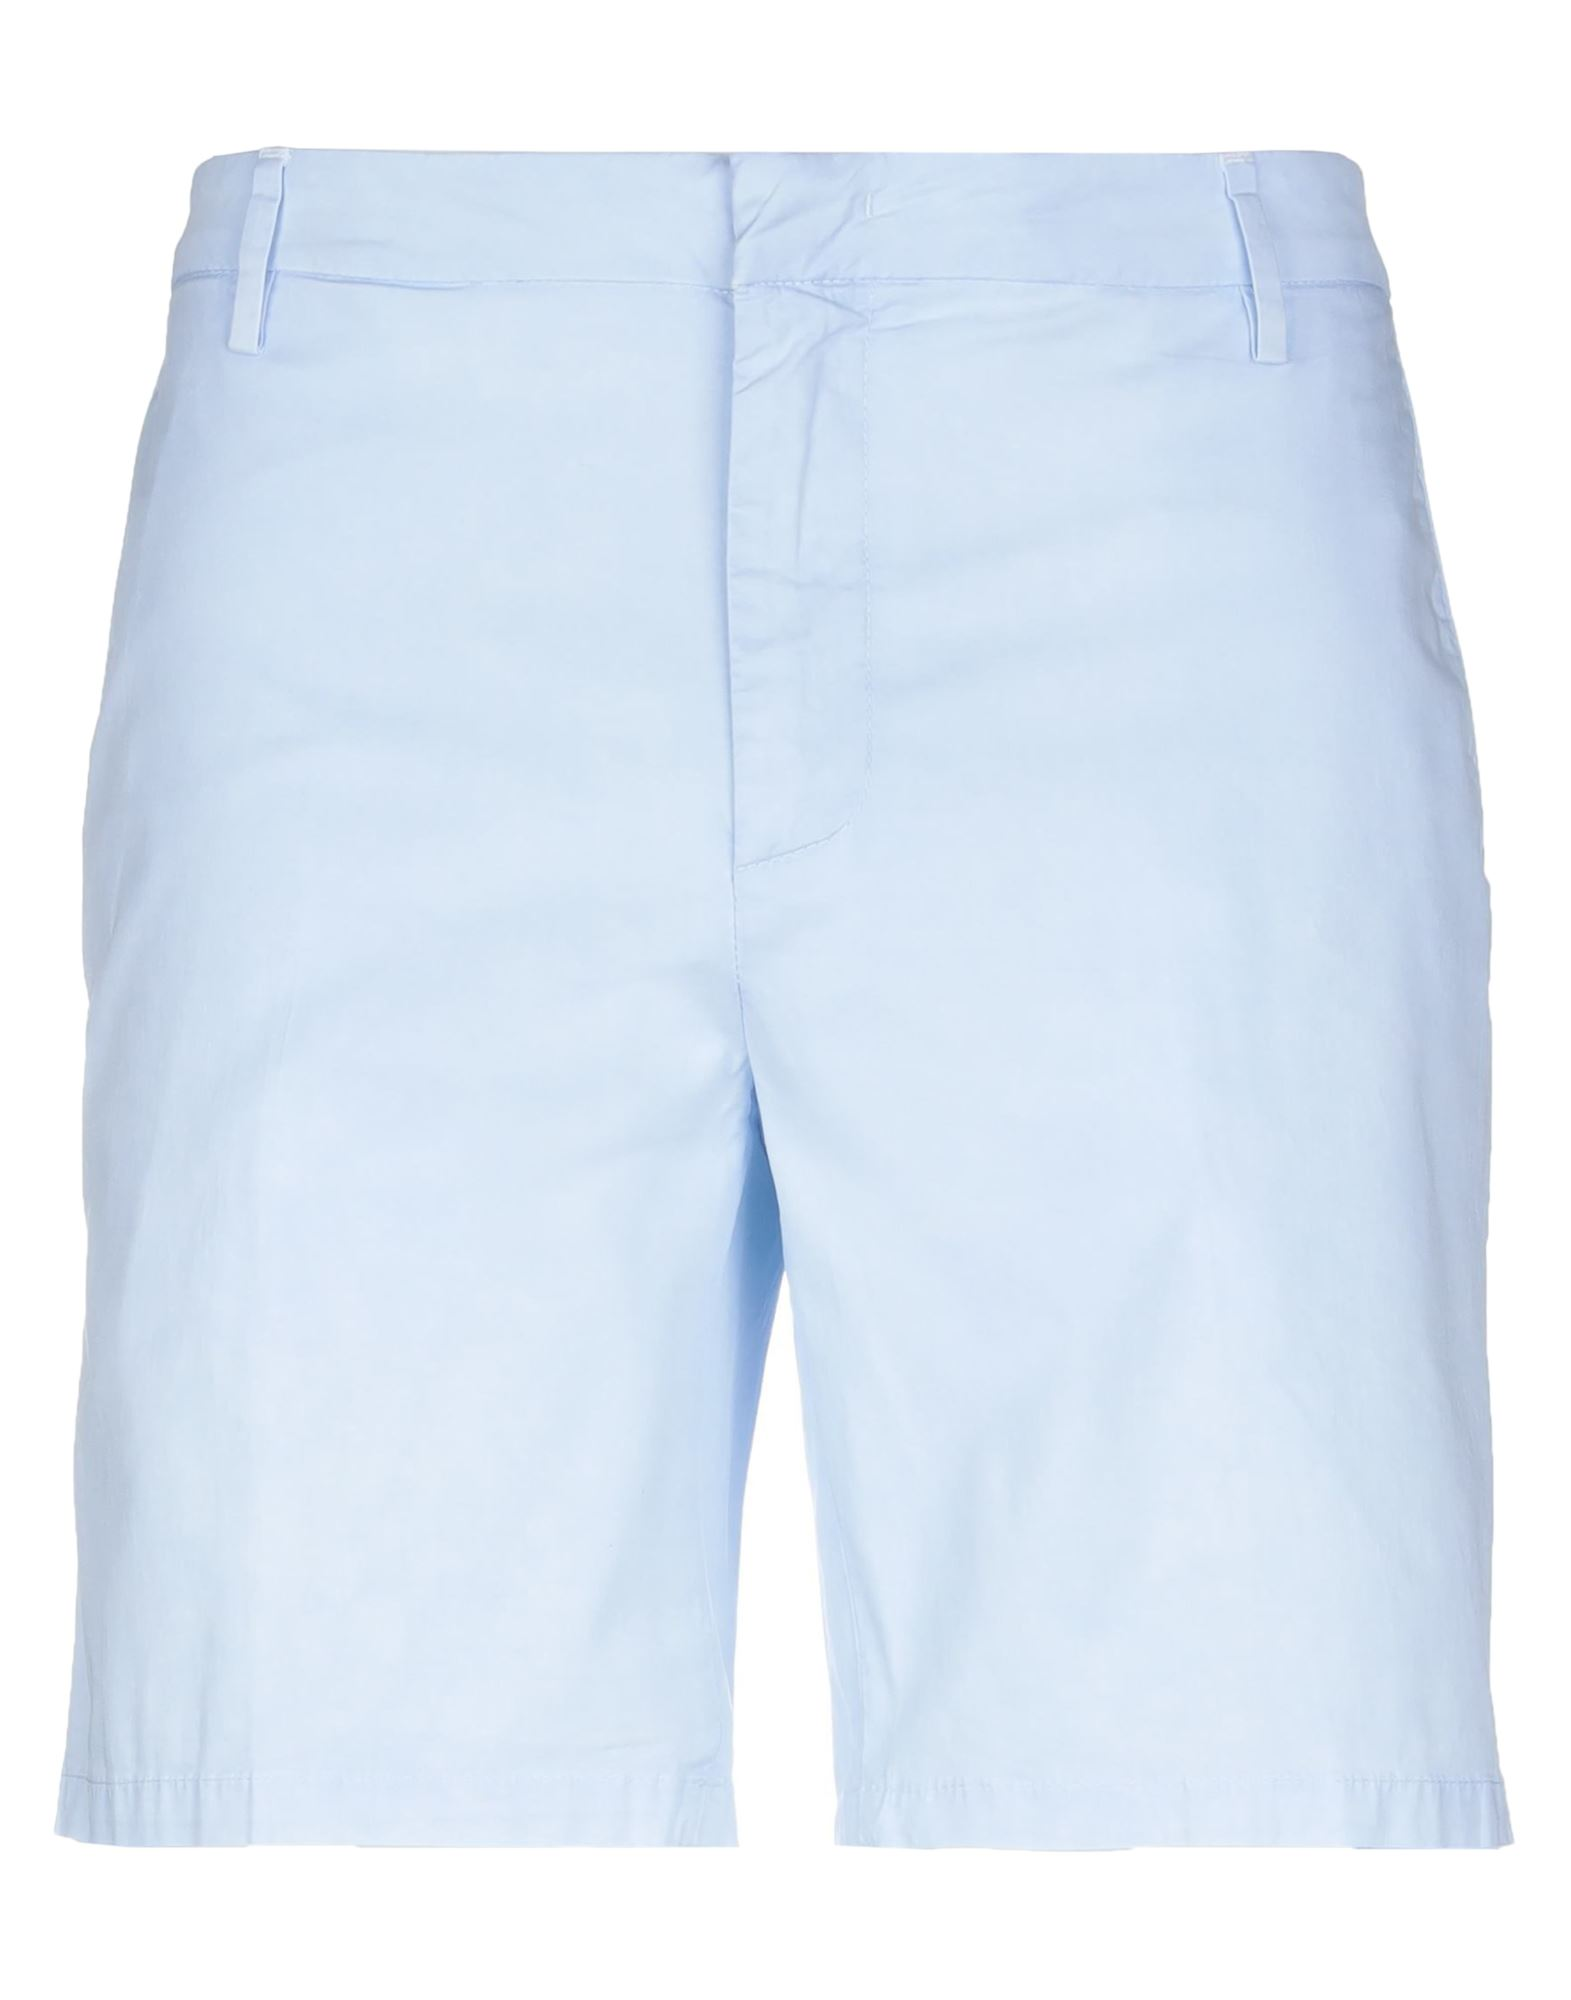 DONDUP Shorts. plain weave, logo, mid rise, button, zip, multipockets, basic solid color, stretch. 96% Cotton, 4% Elastane